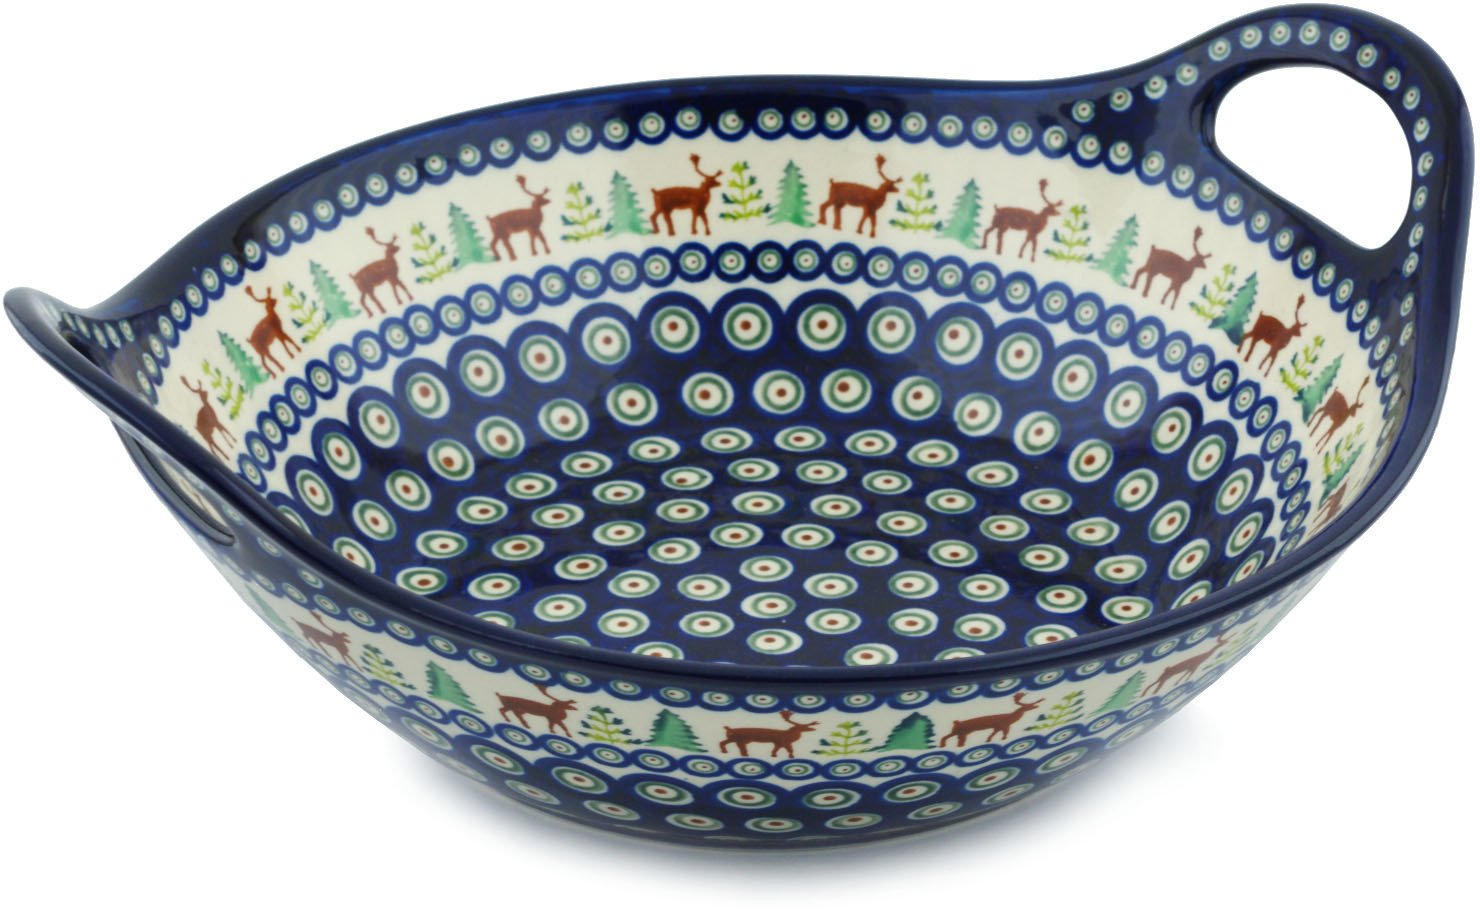 Polish Pottery 12-inch Bowl with Handles (Reindeer In The Pines Theme) + Certificate of Authenticity